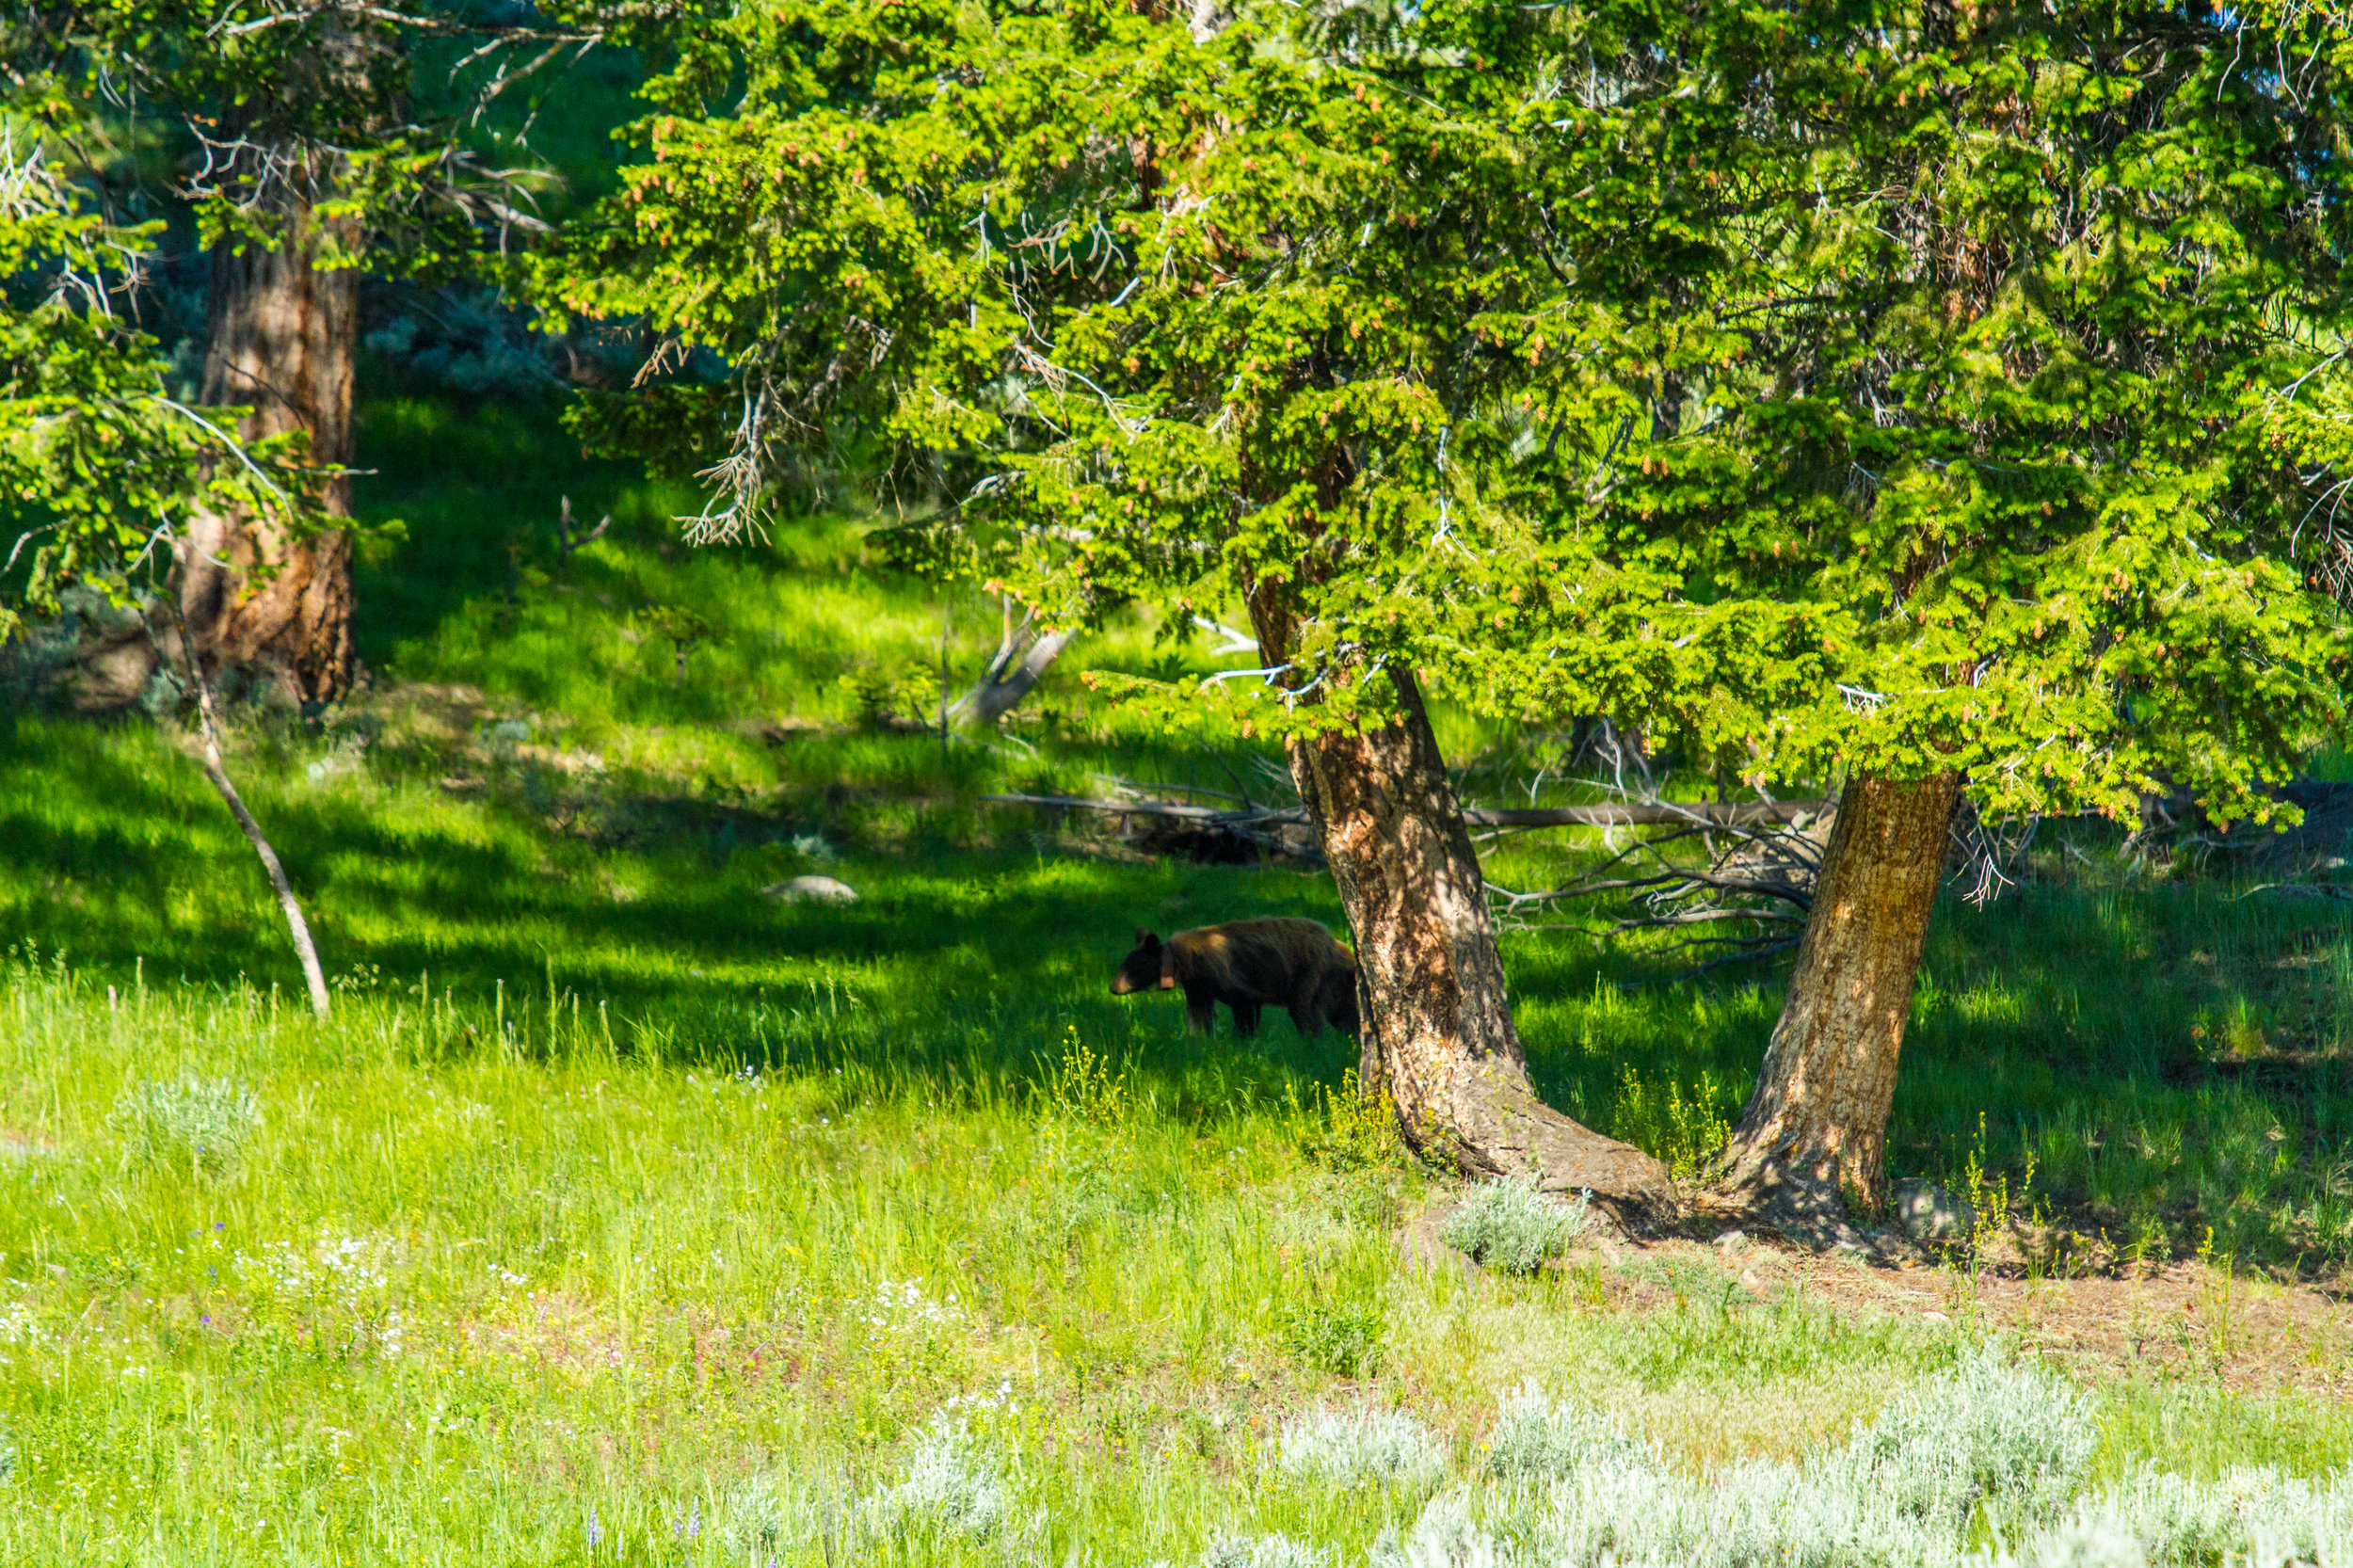 Lamar Valley, Yellowstone National Park, Image # 5146